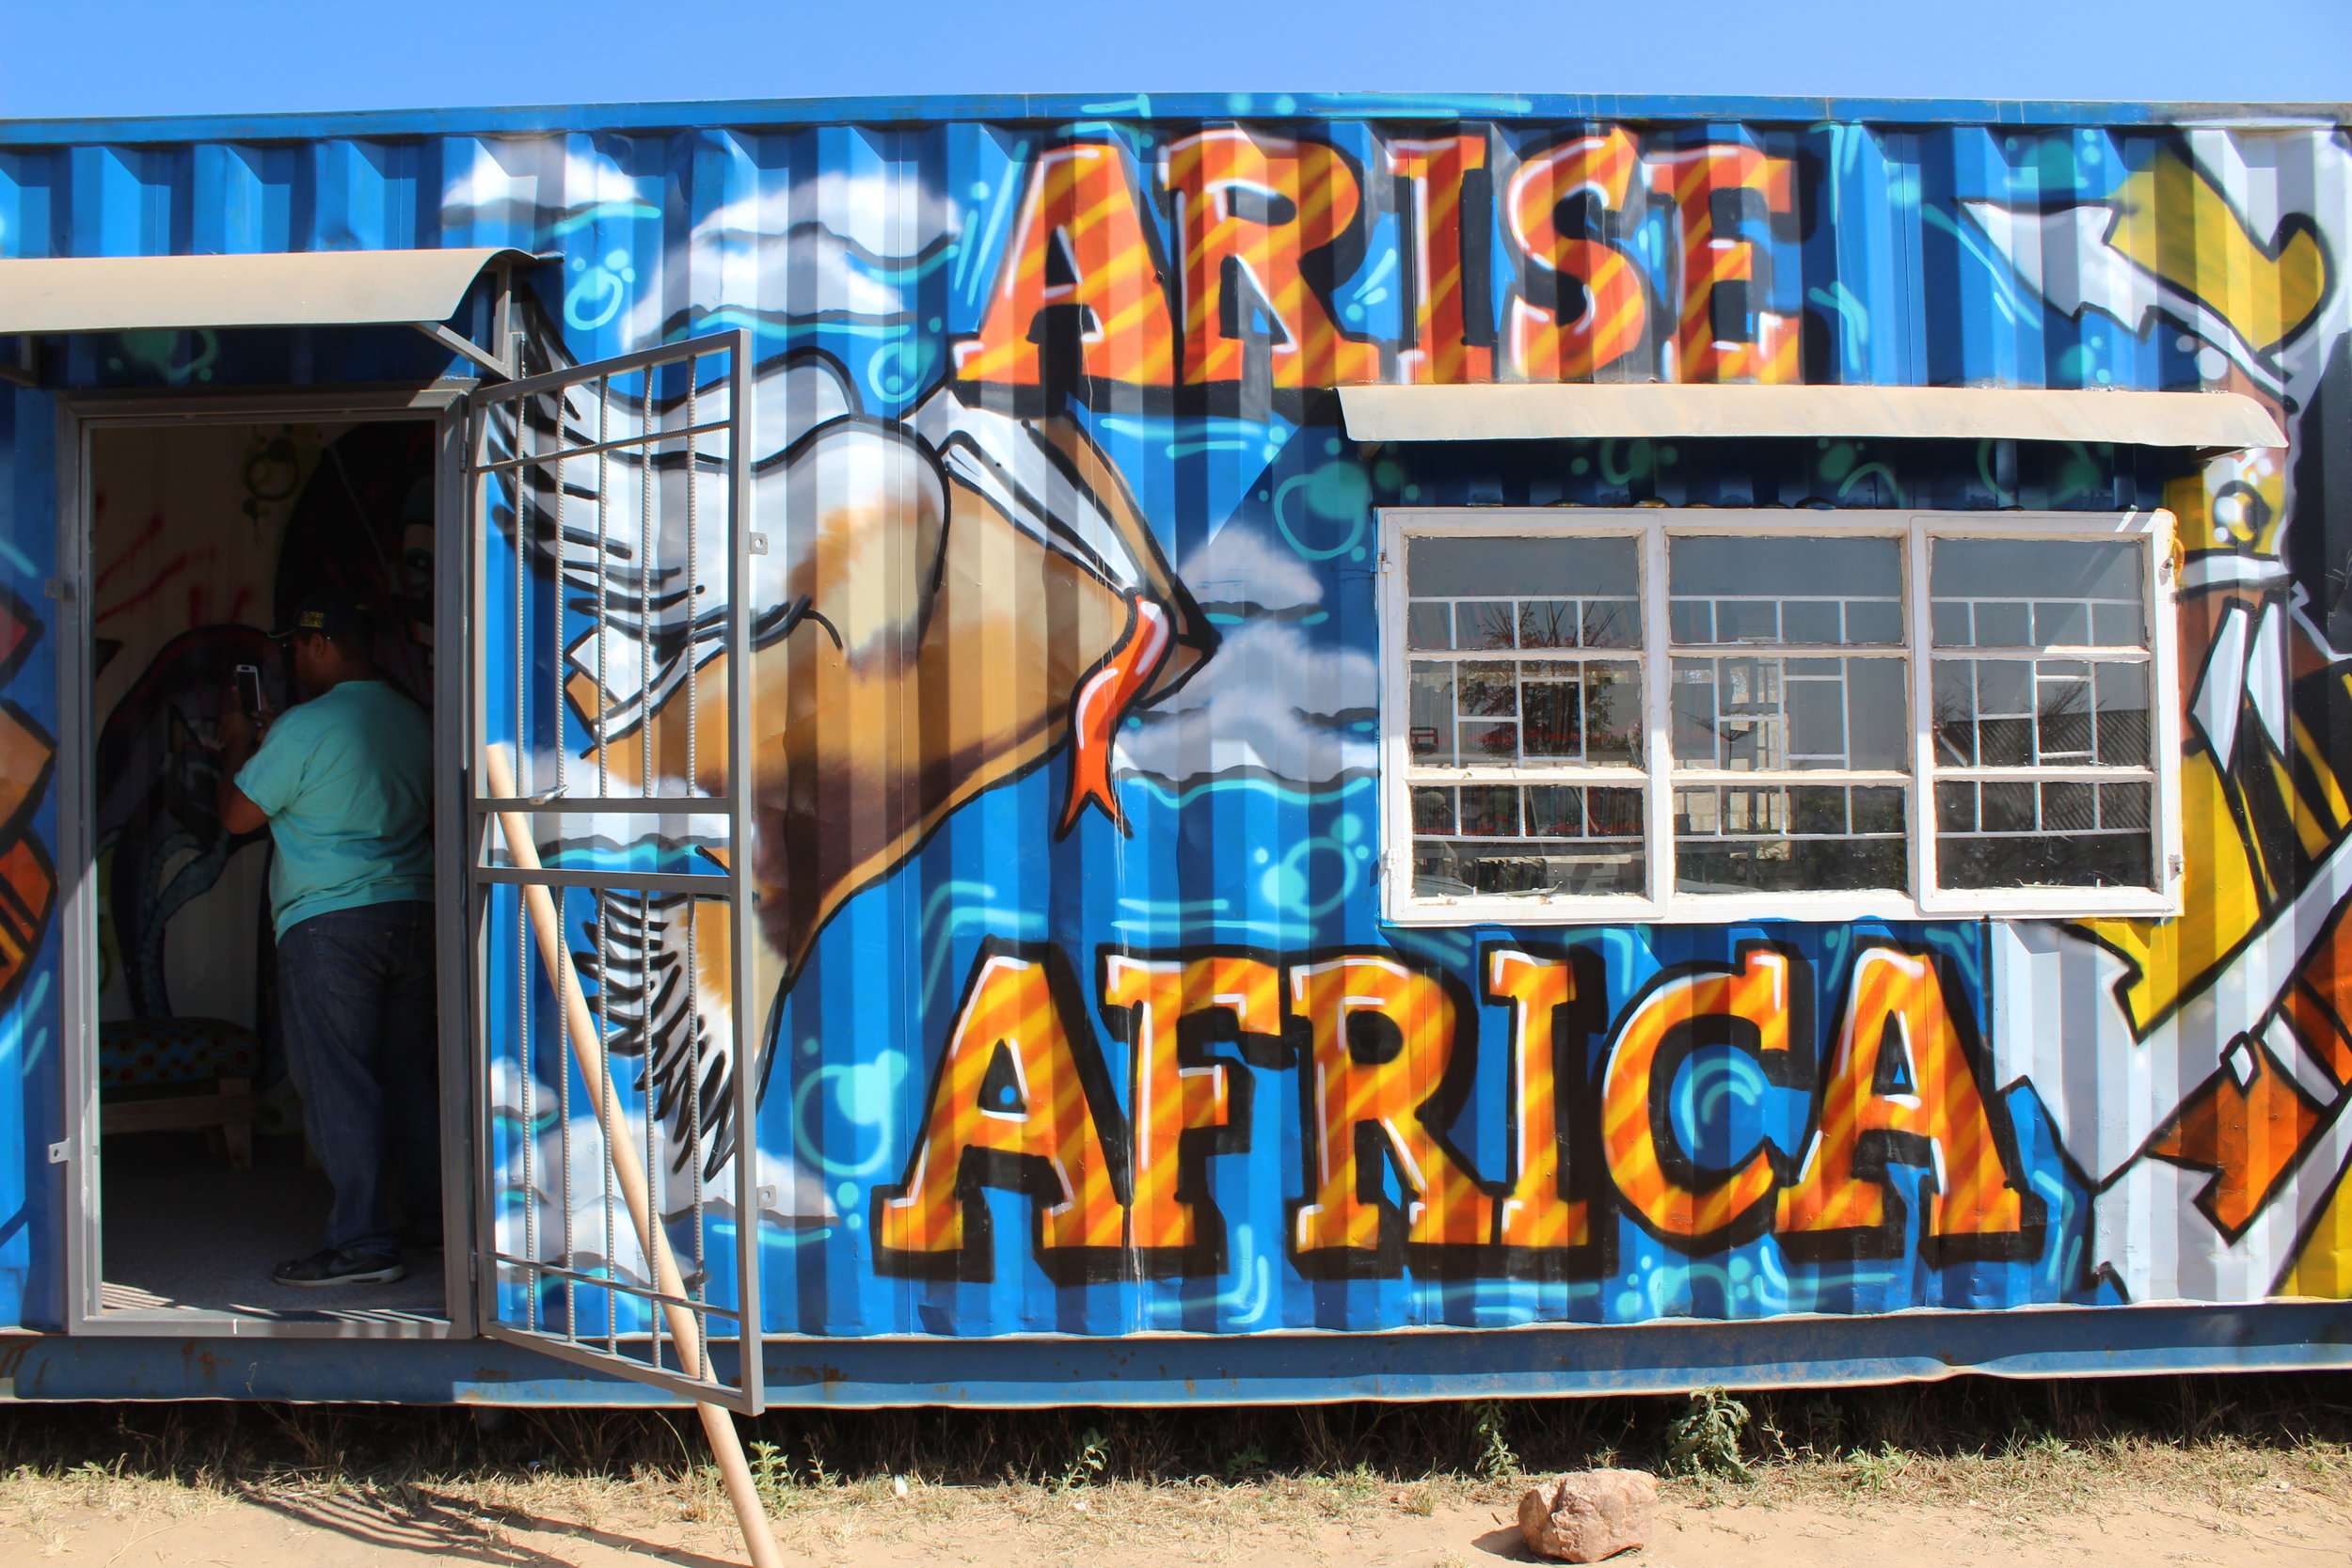 One shipping container, 5 holes for doors and windows, one amazing paint job, 2,000 books